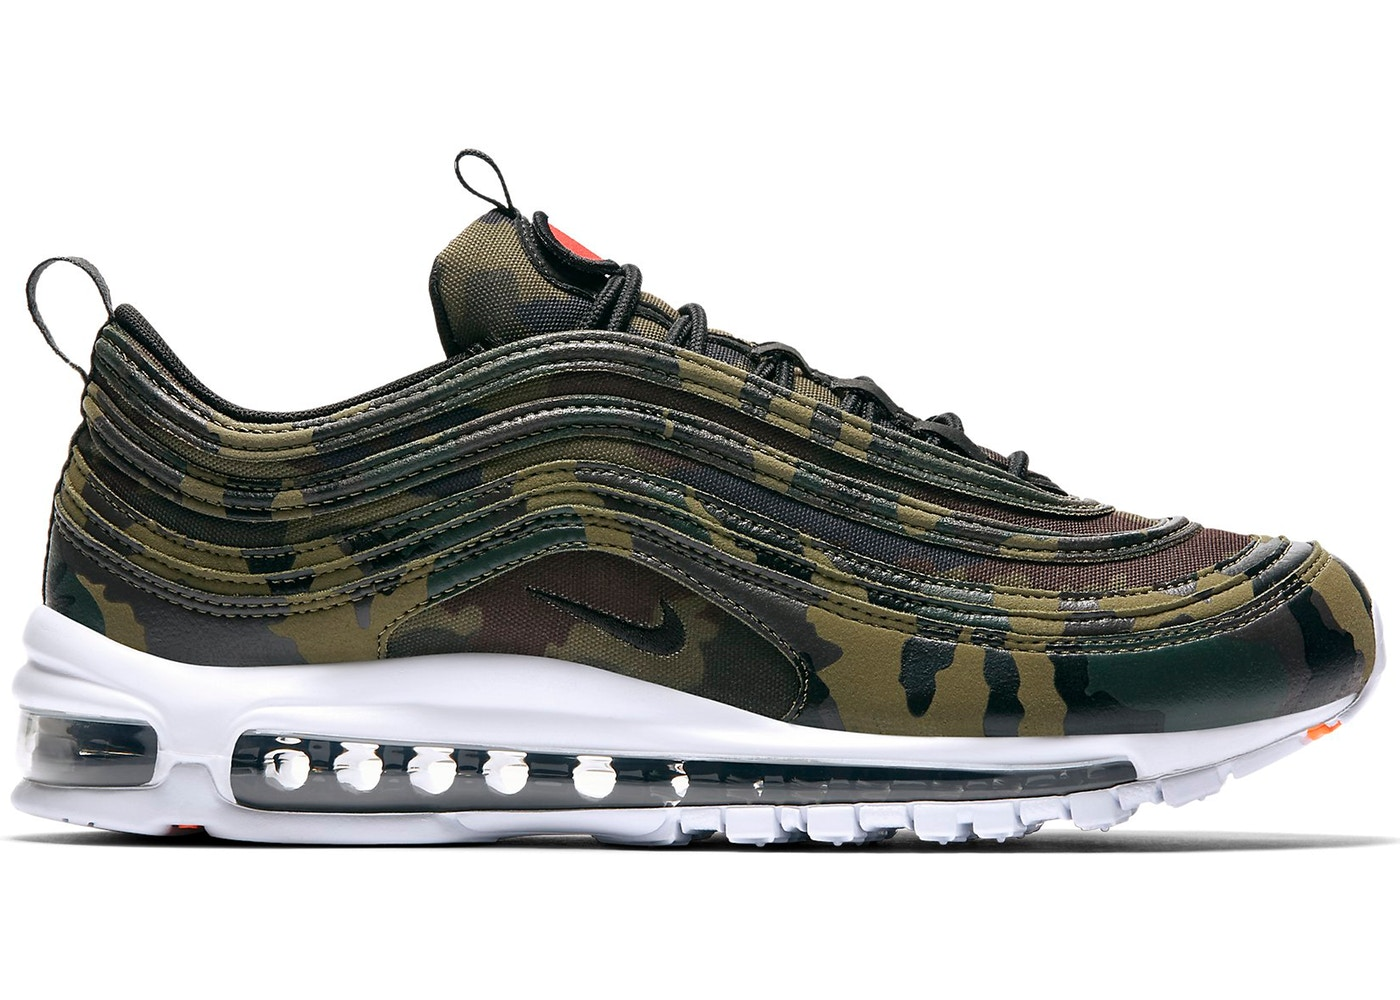 6a11ddb72b Air Max 97 Country Camo (France) - AJ2614-200